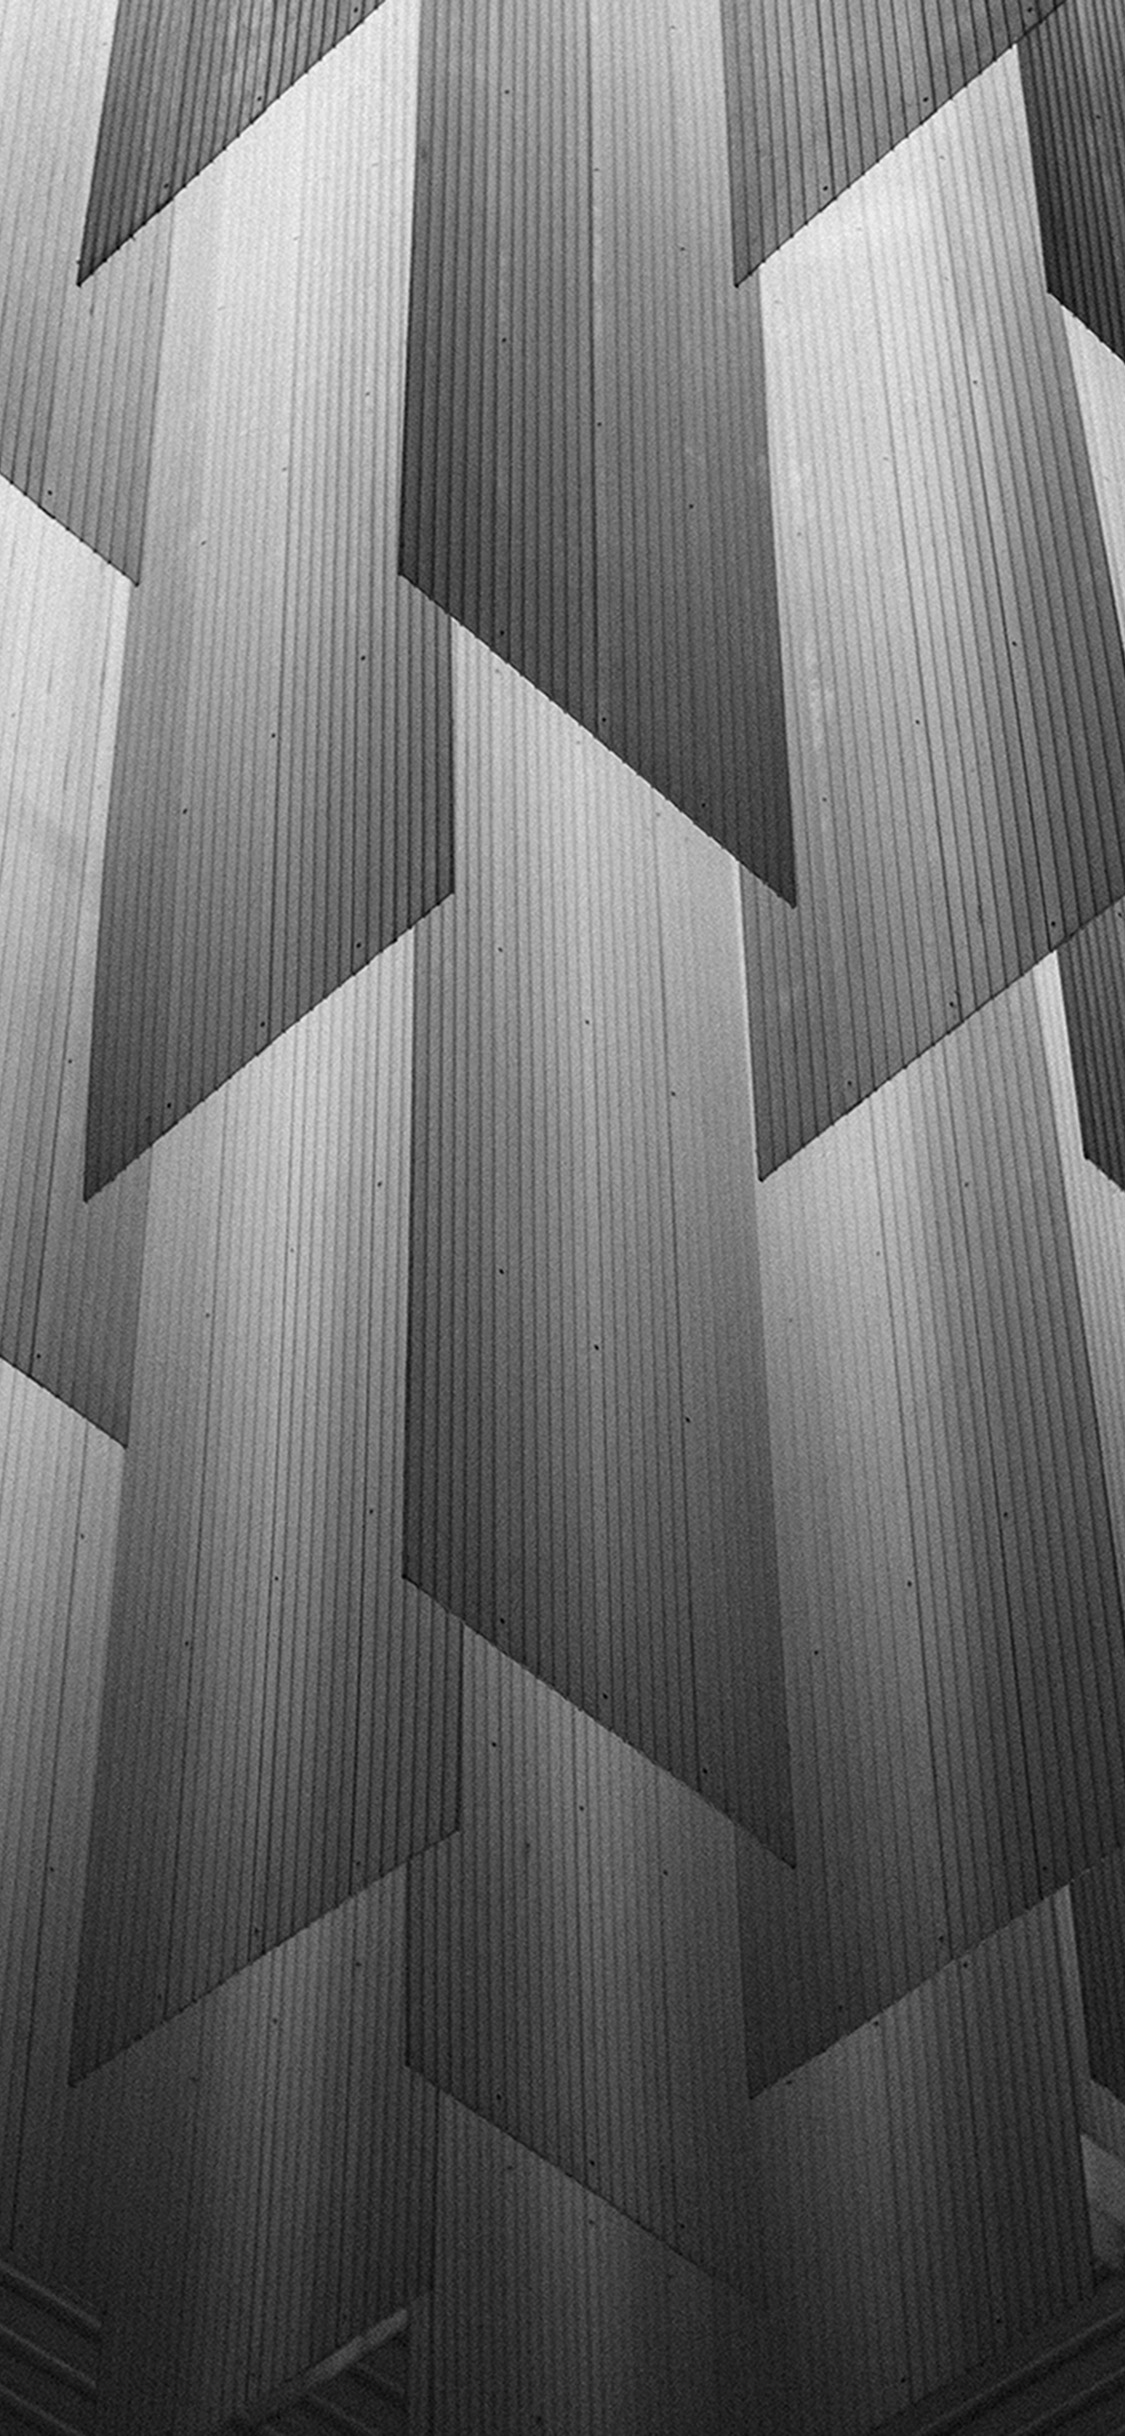 iPhonexpapers.com-Apple-iPhone-wallpaper-wd19-pattern-background-bw-abstract